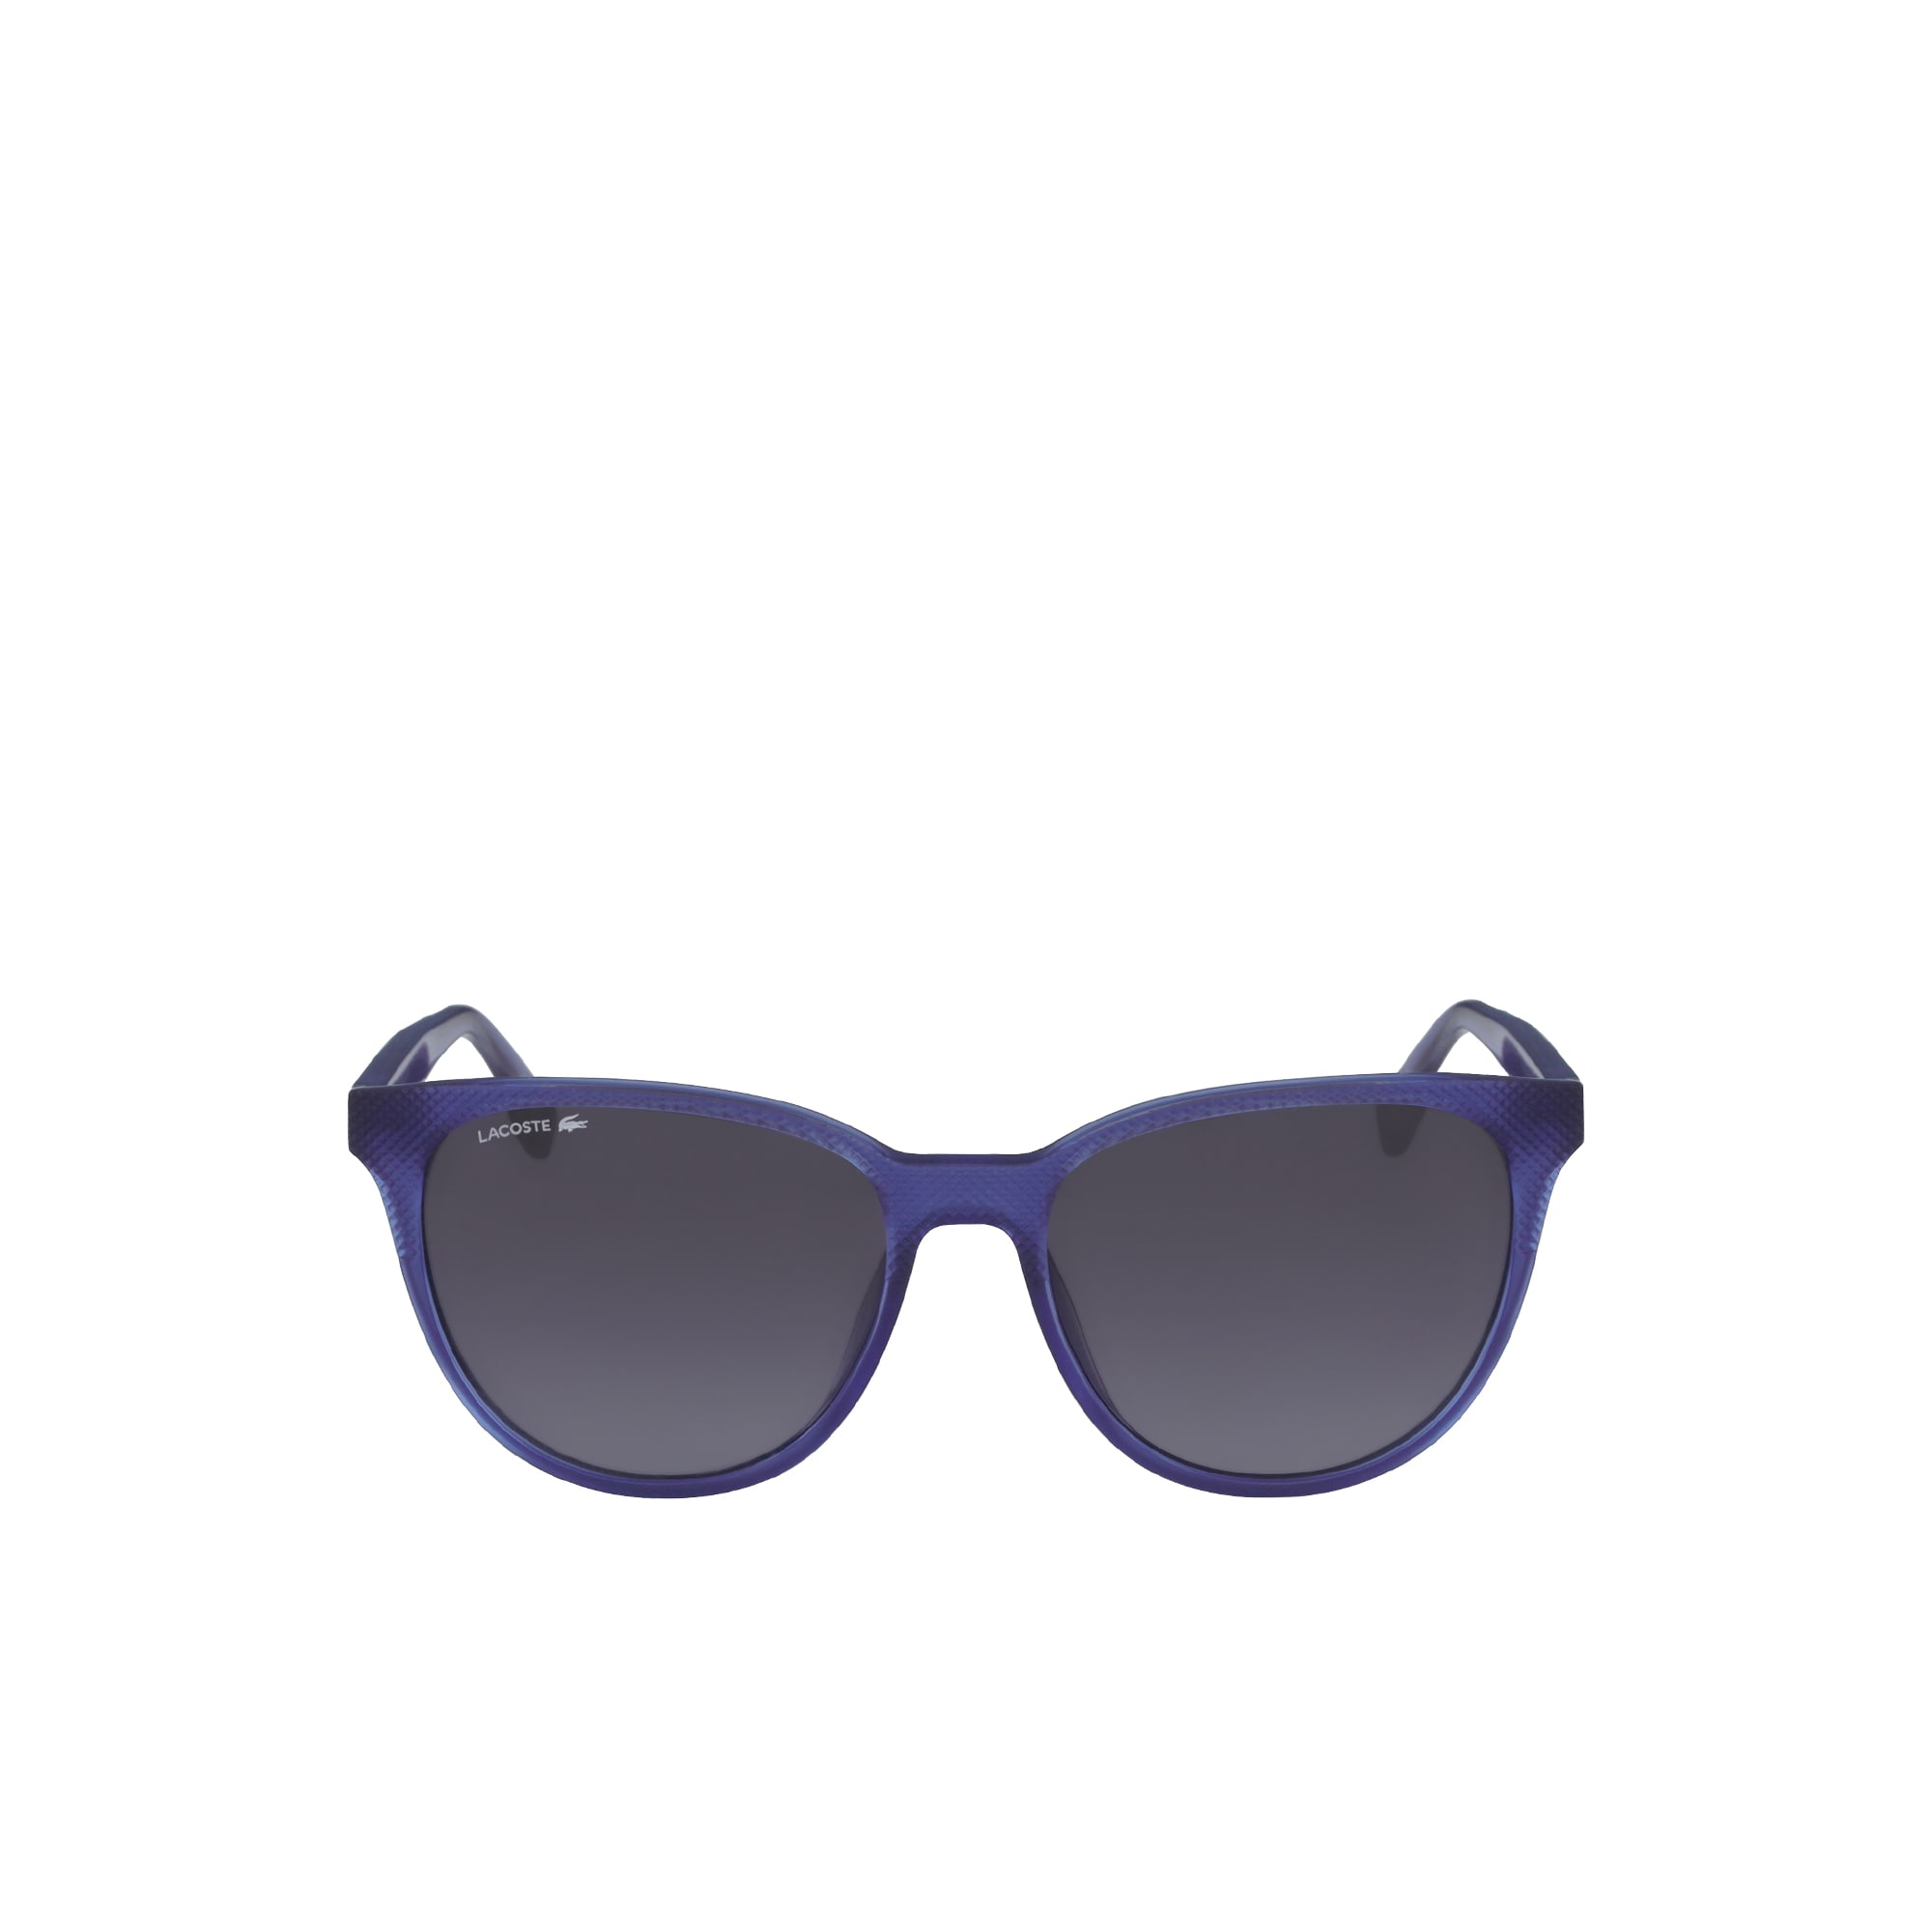 Women's L.12.12 Sunglasses